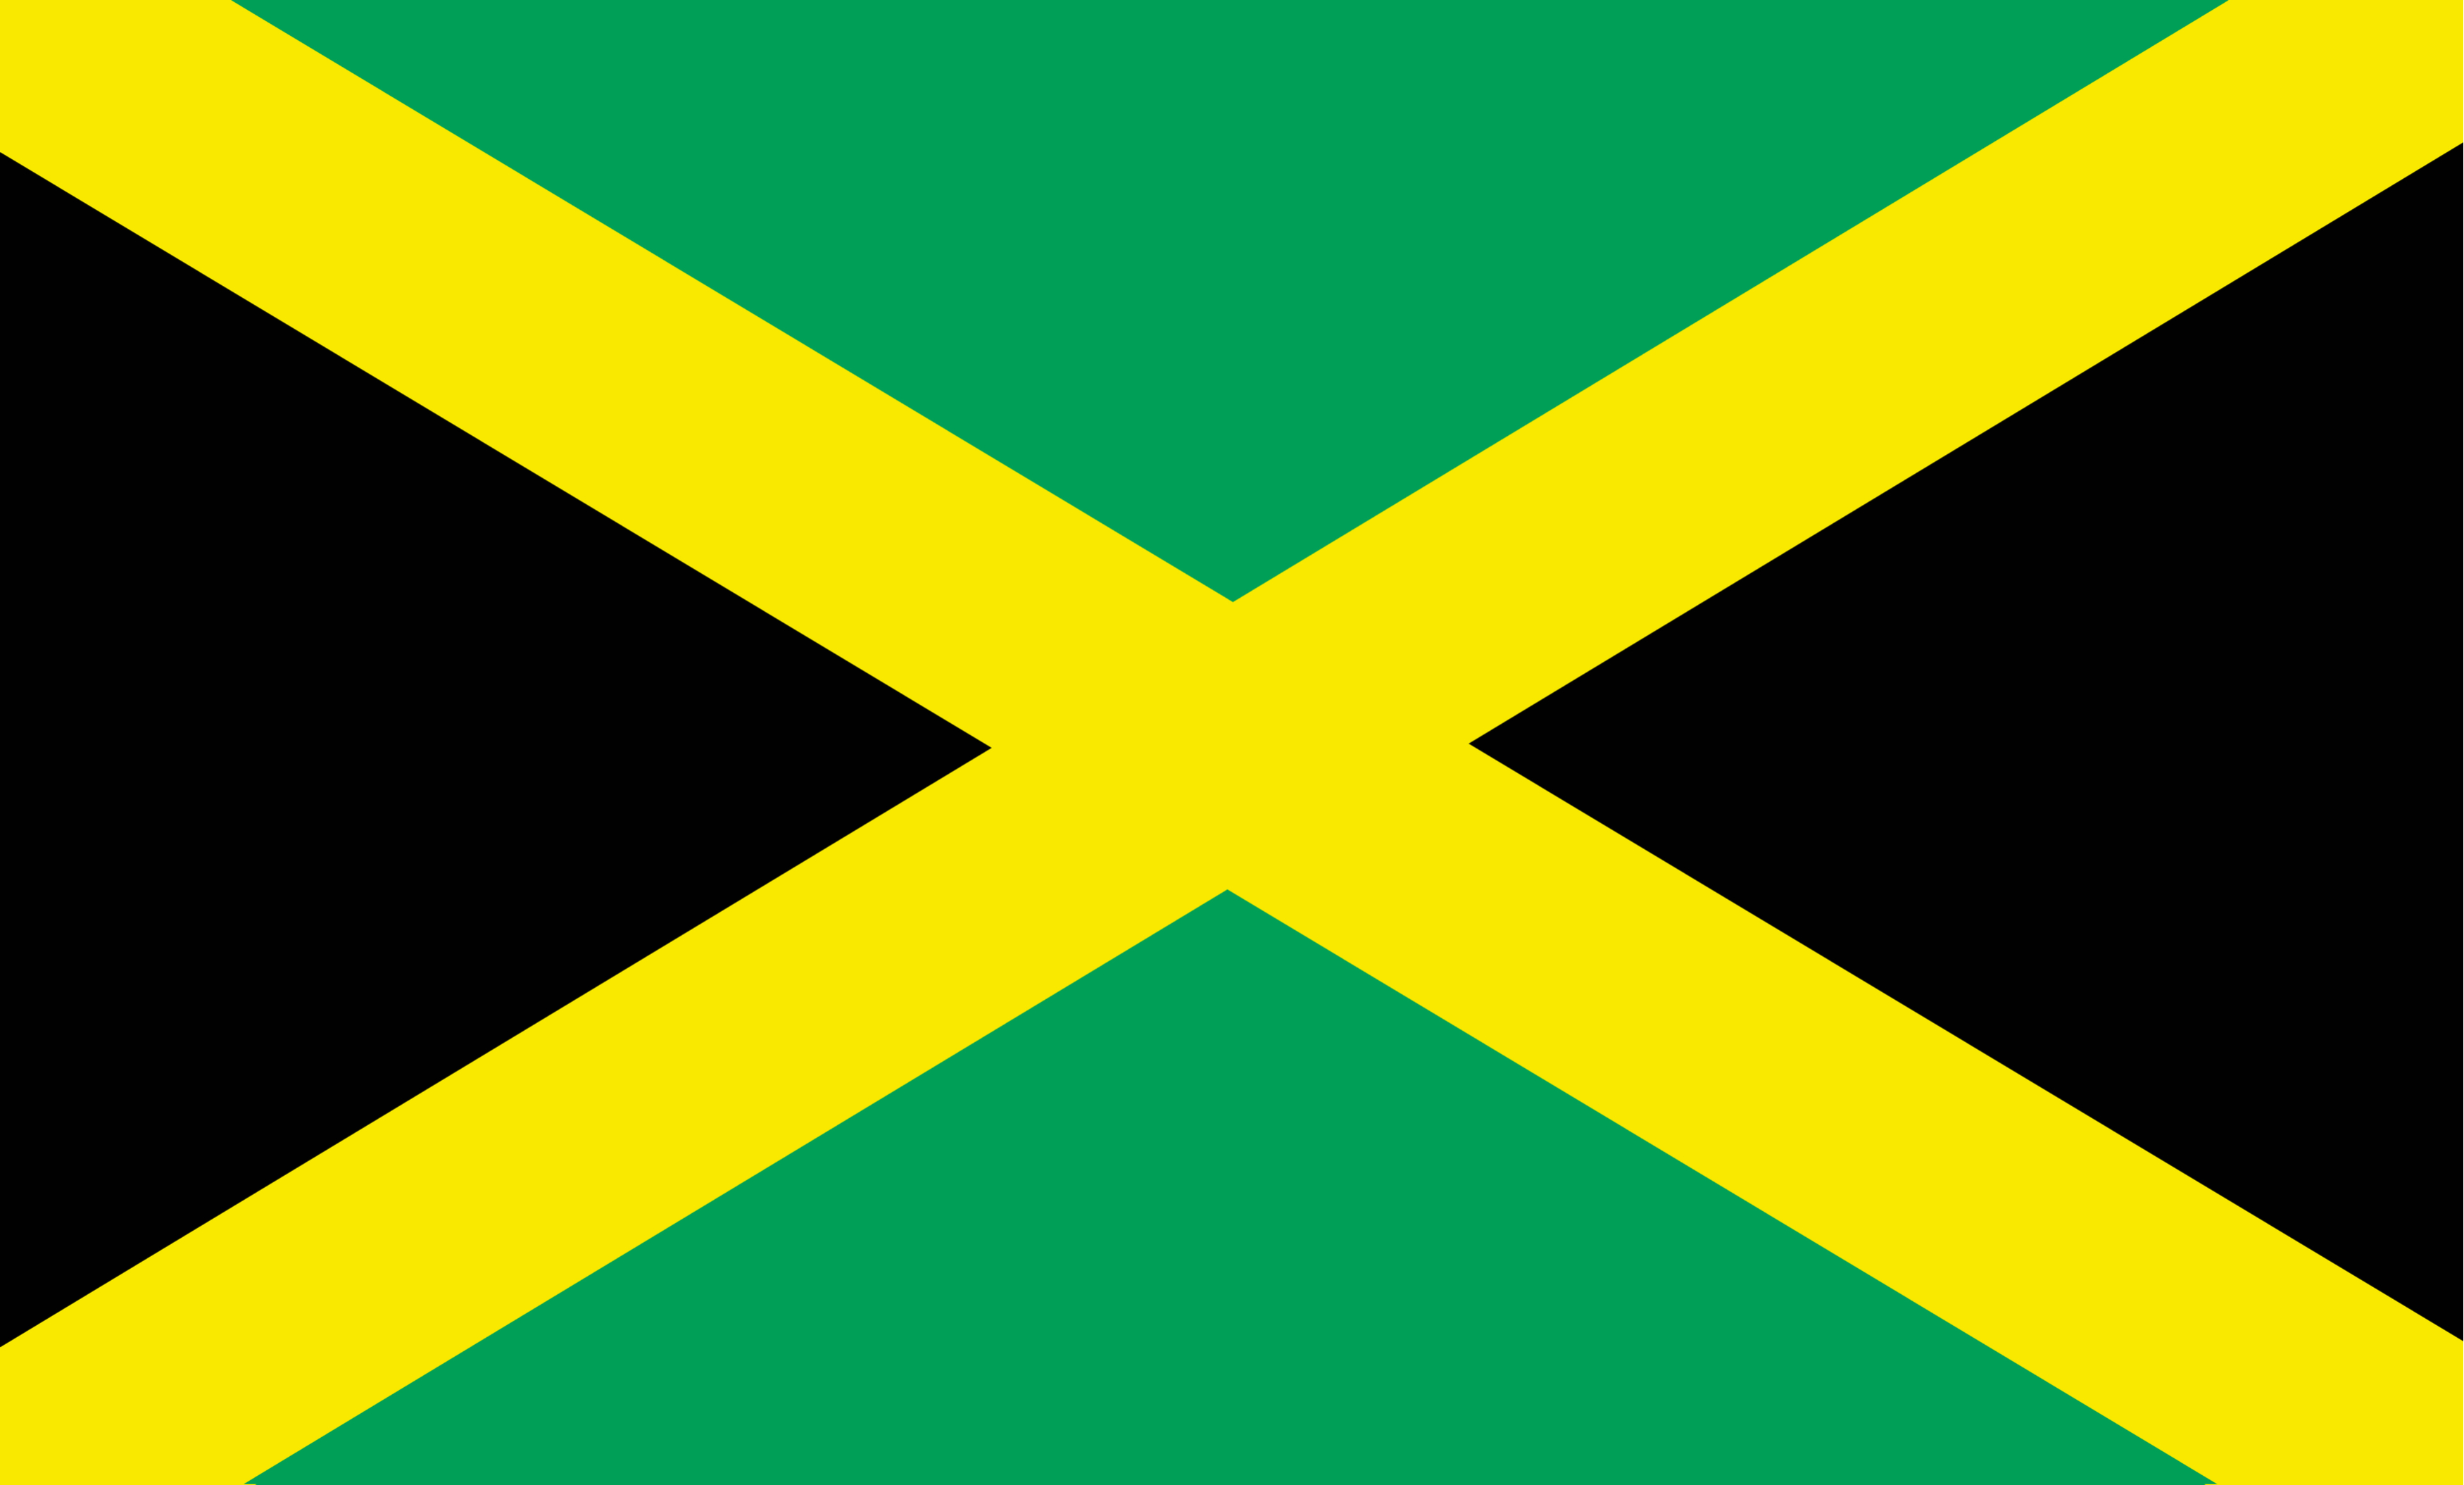 The flag of Jamaica.